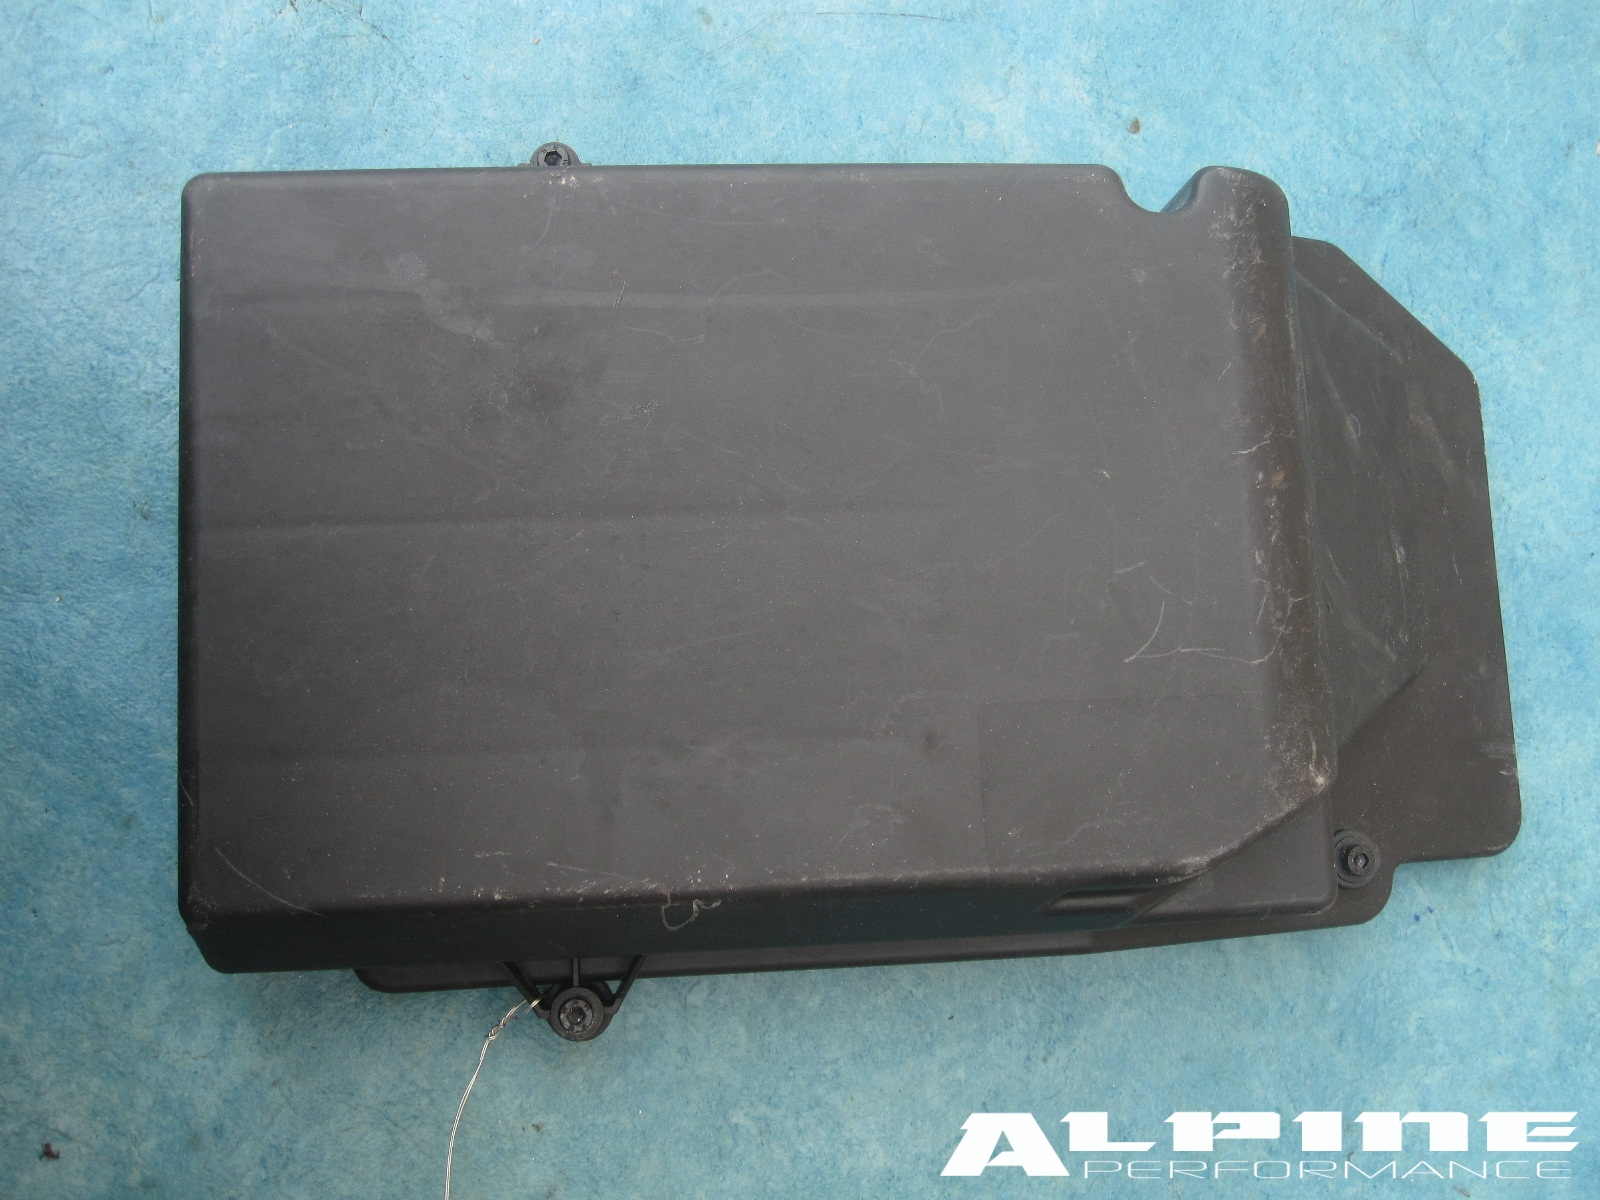 Origianal Mercedes Benz S550 Cl550 Left Case Housing Fuse Box Cover 1 In Stock